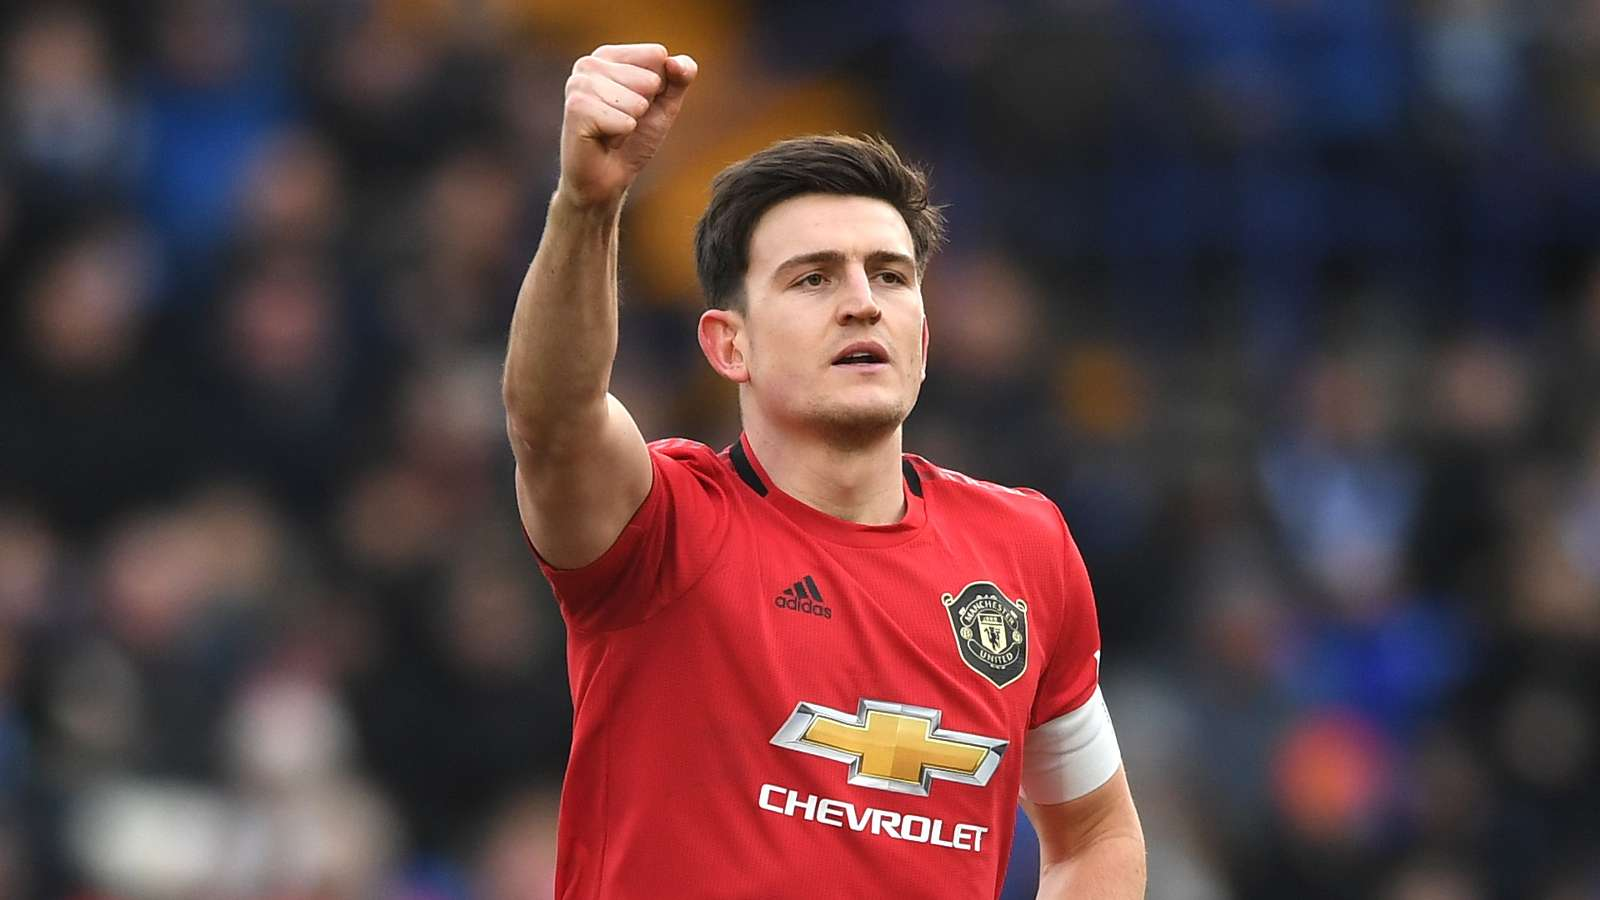 Harry Maguire, Man Utd